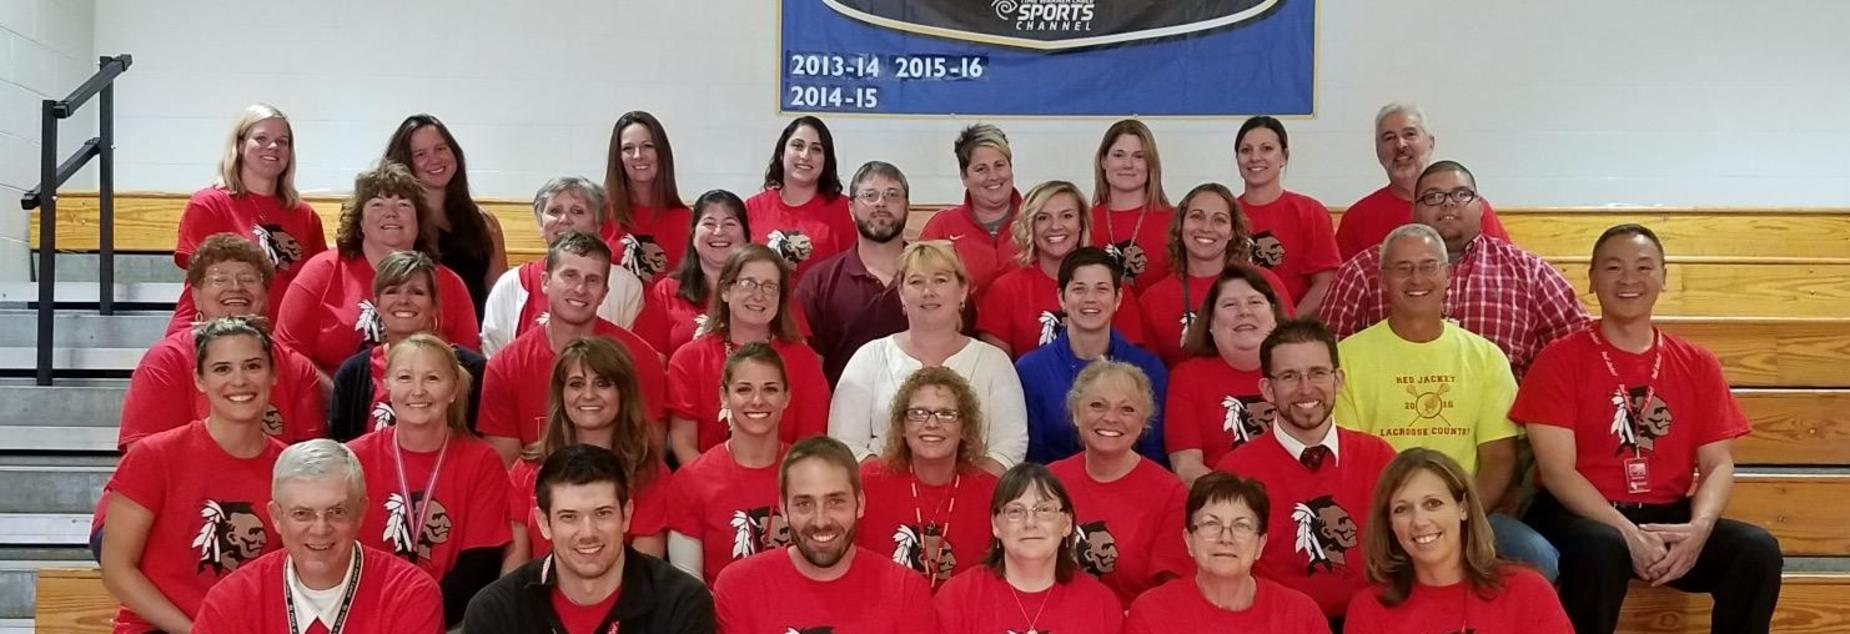 HS staff sitting on bleachers 2017-2018